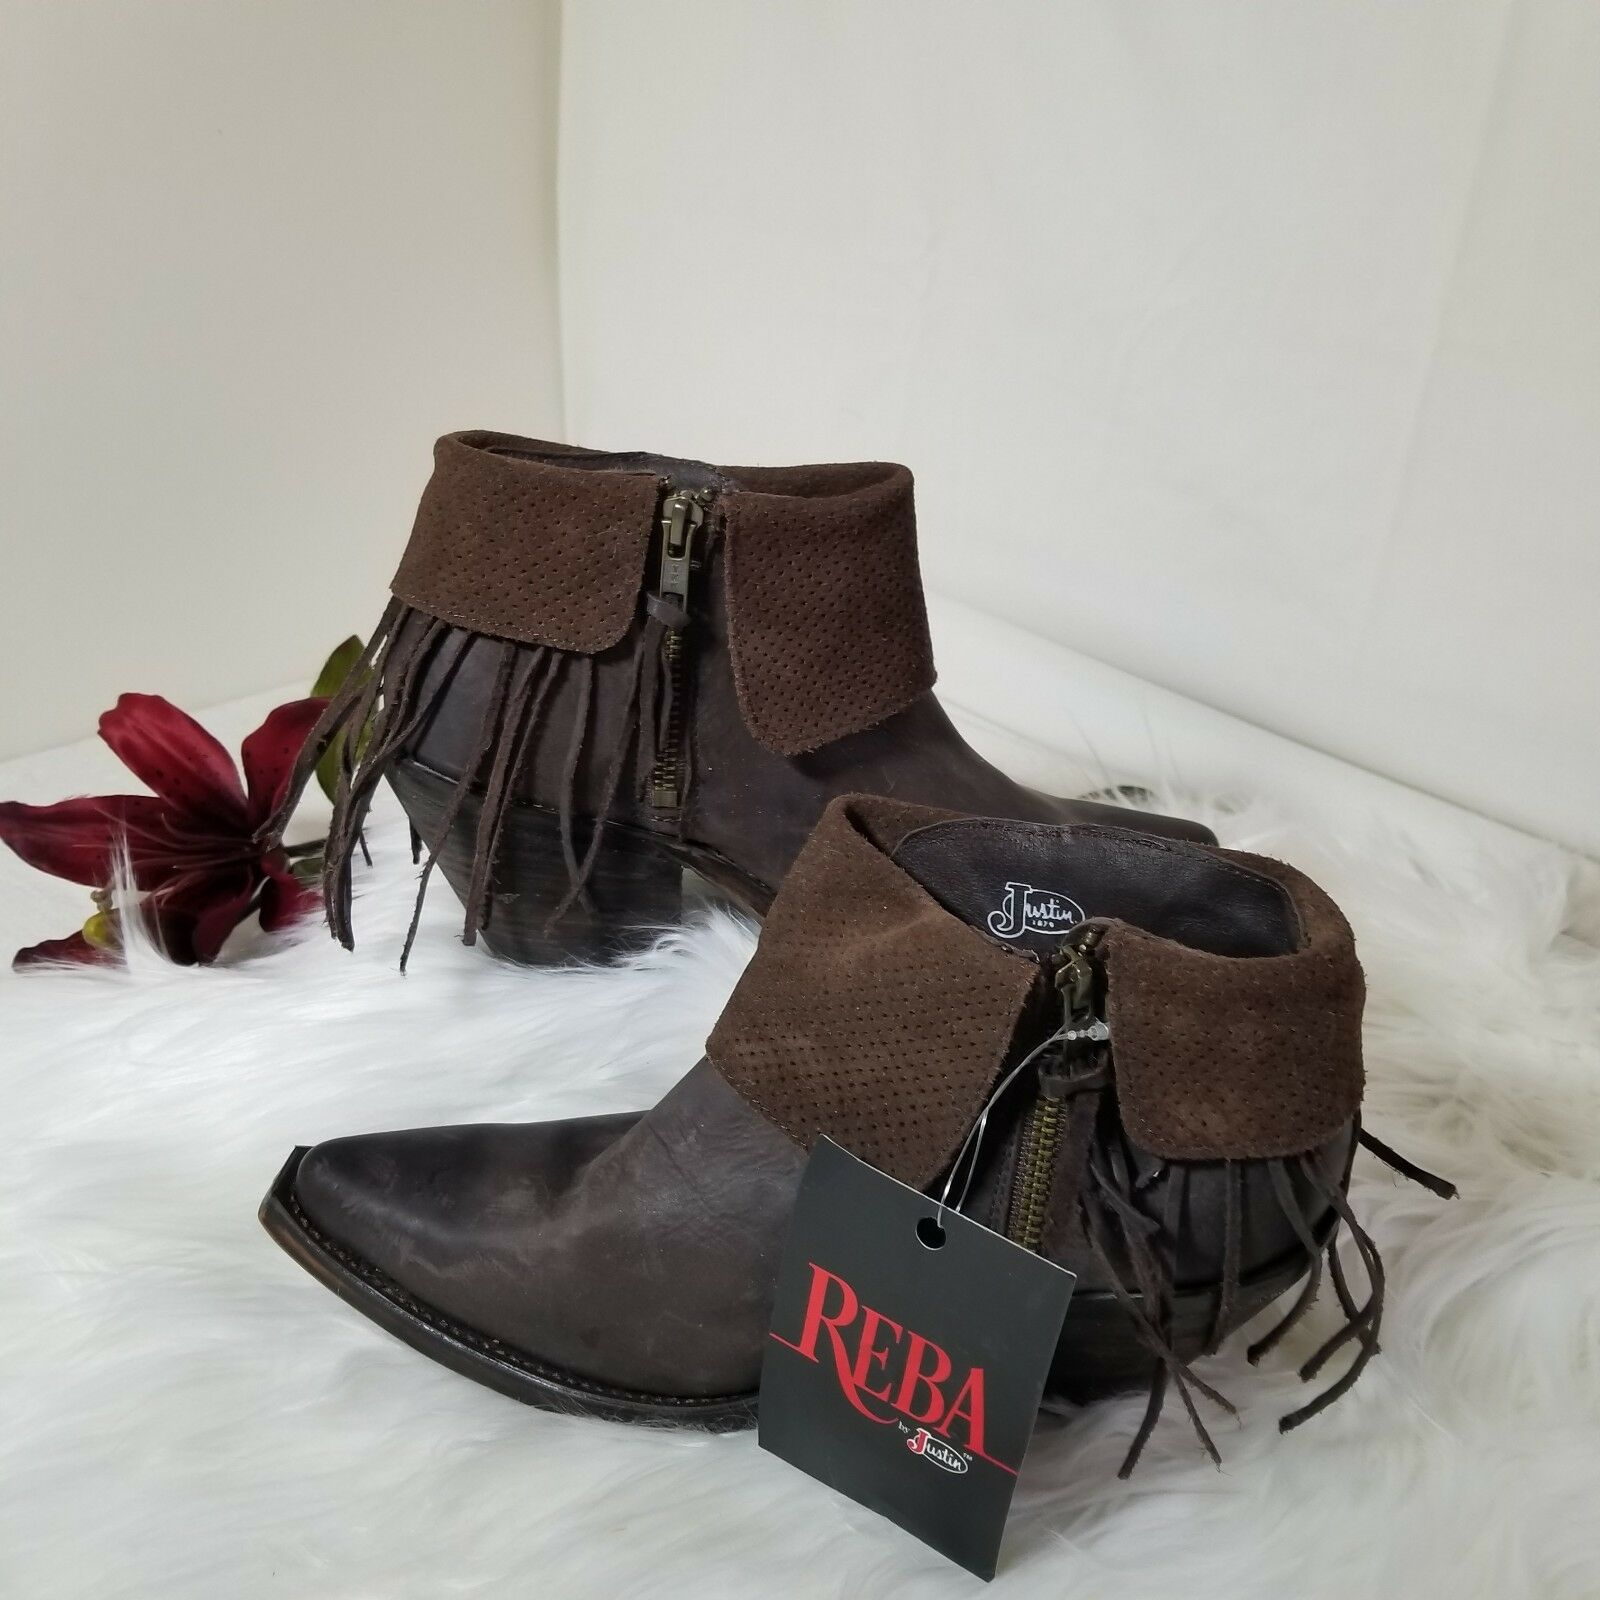 NWT Reba Justins Brown Leather Ankle pirate Boots booties shoes Womens US 7 B